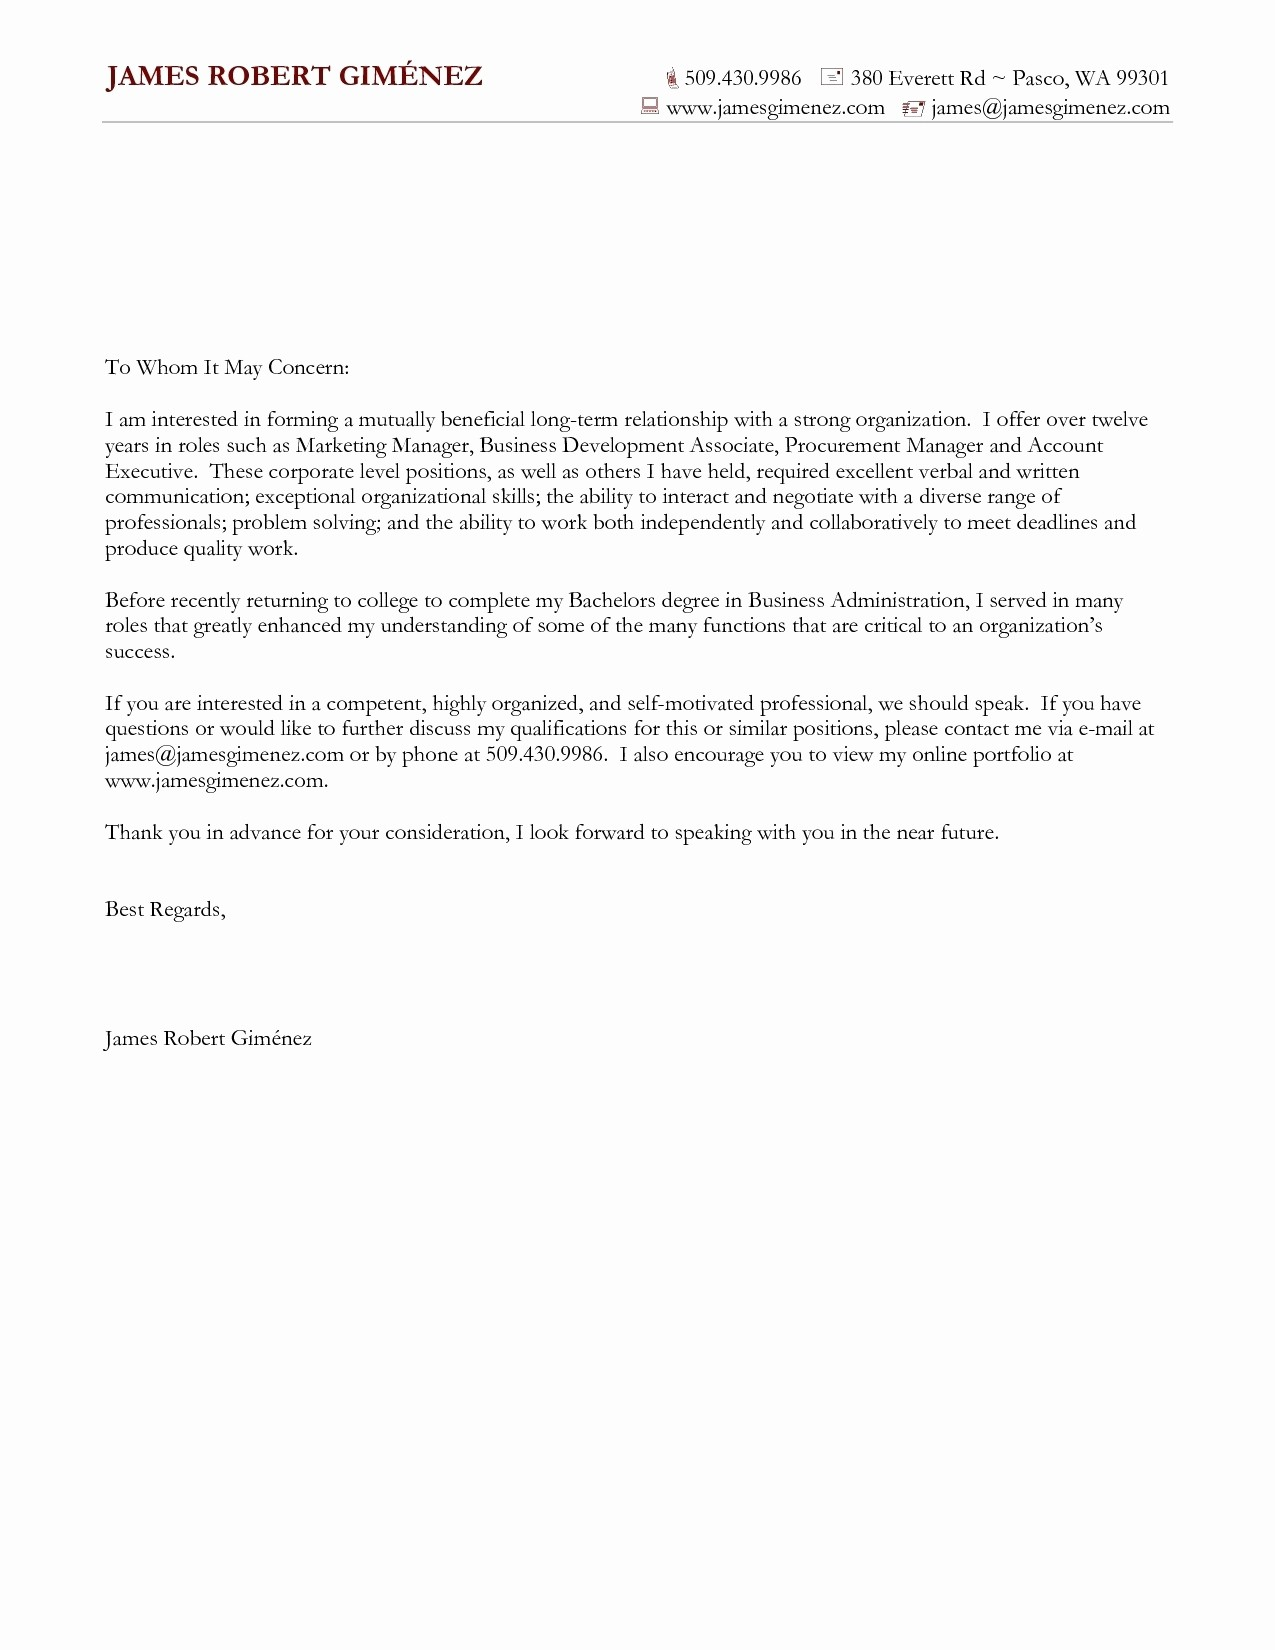 Cover Letter On A Resume Fresh Mock Cover Letter